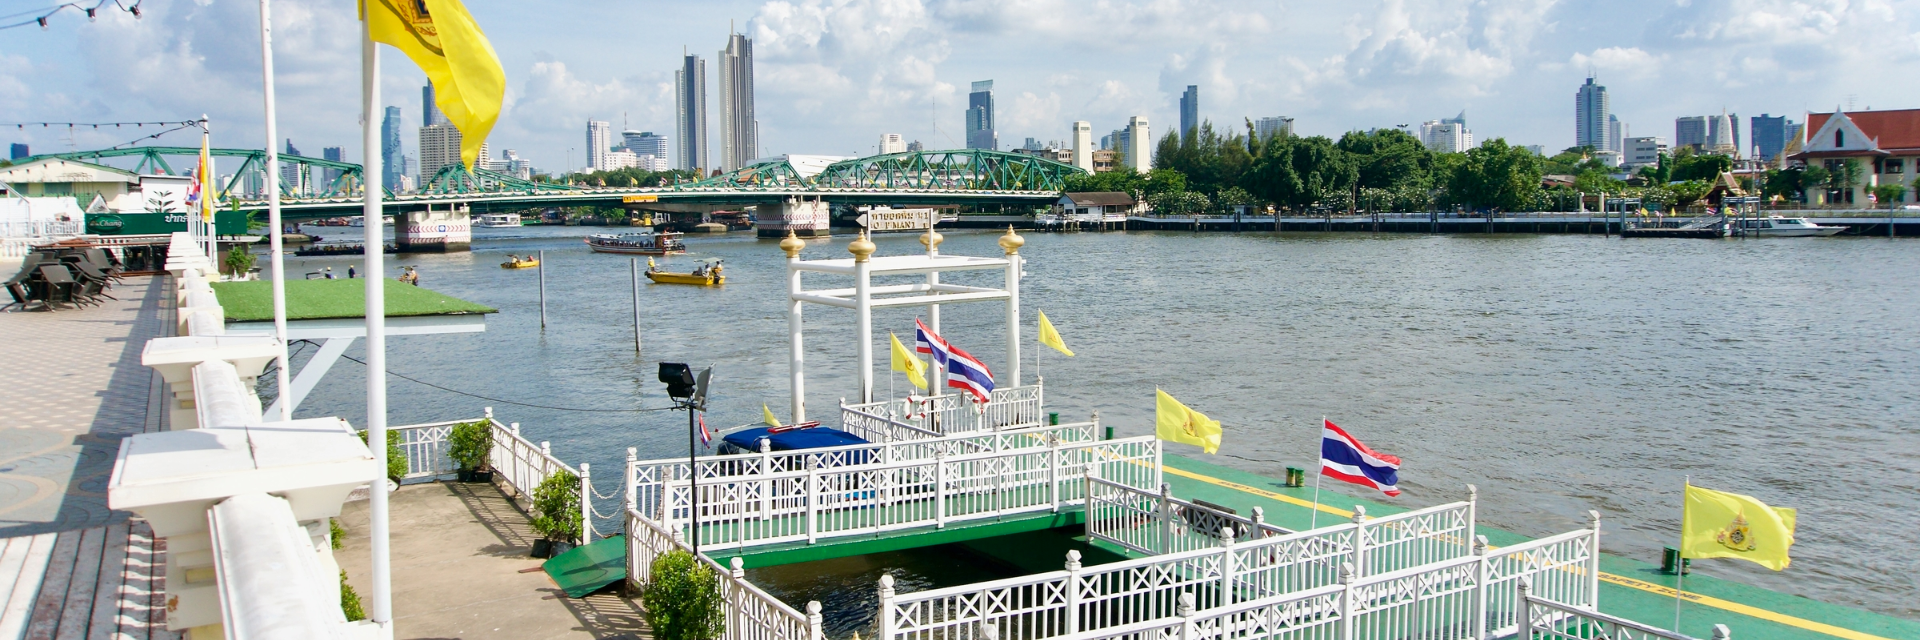 1 Day trip boat journey in Bangkok. Enjoy a Great Time alongside the River with Bangkok's Boat Service